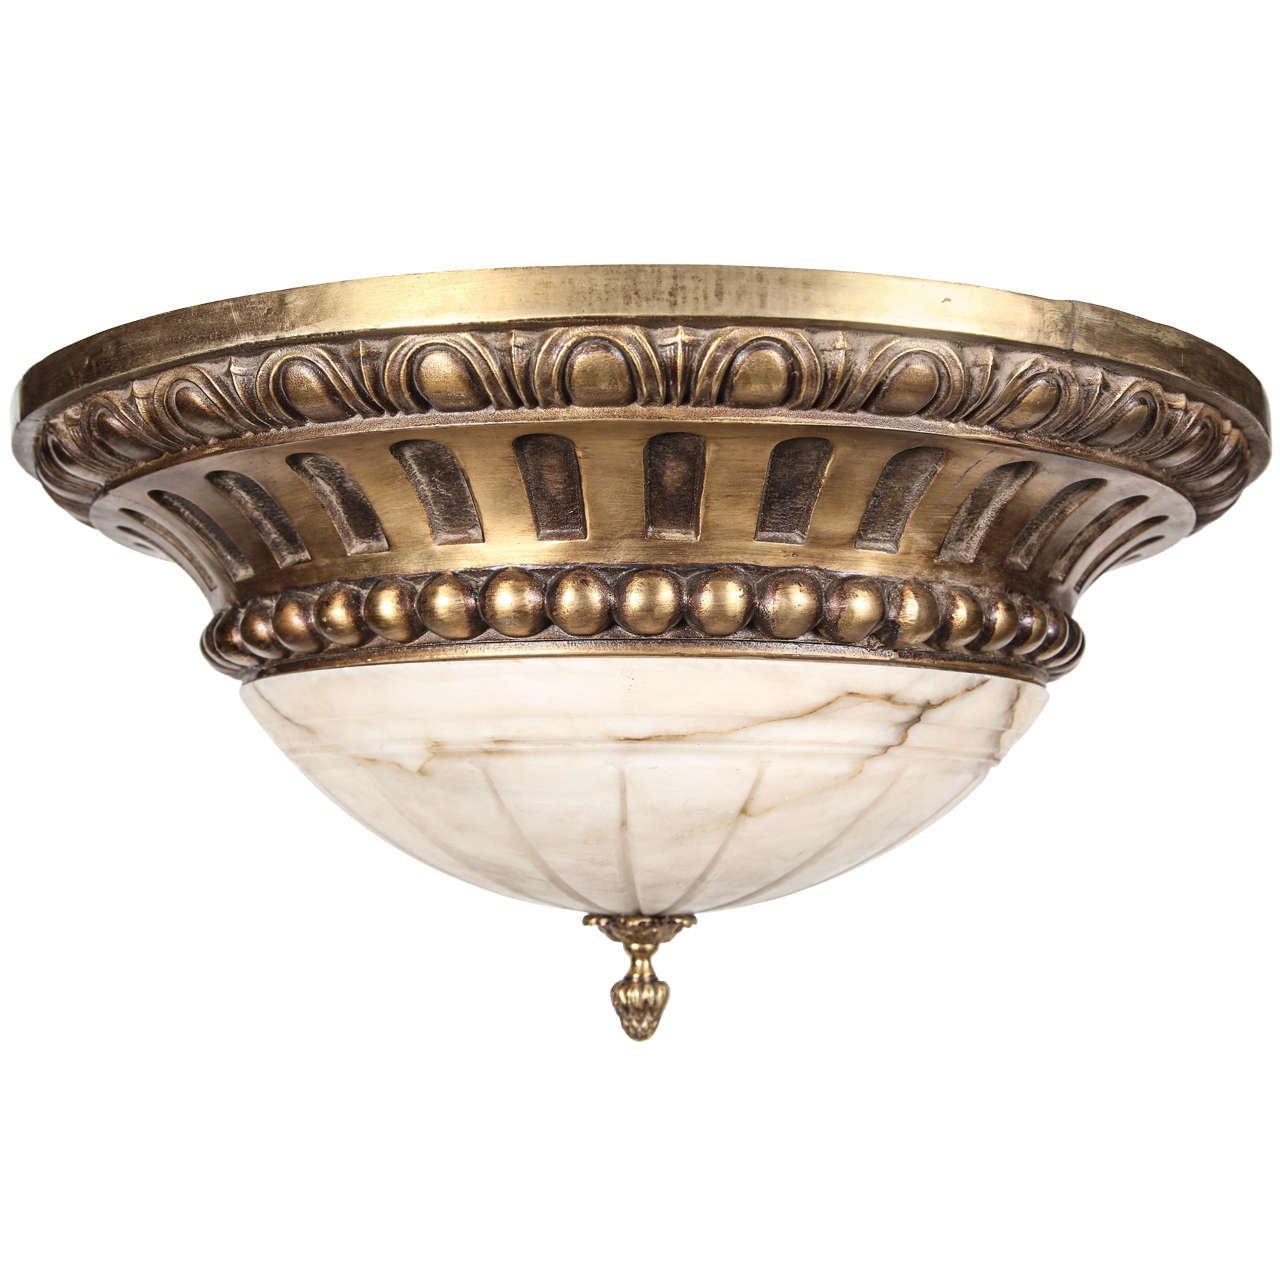 Bronze and Alabaster Flush Mount Light For Sale at 1stdibs